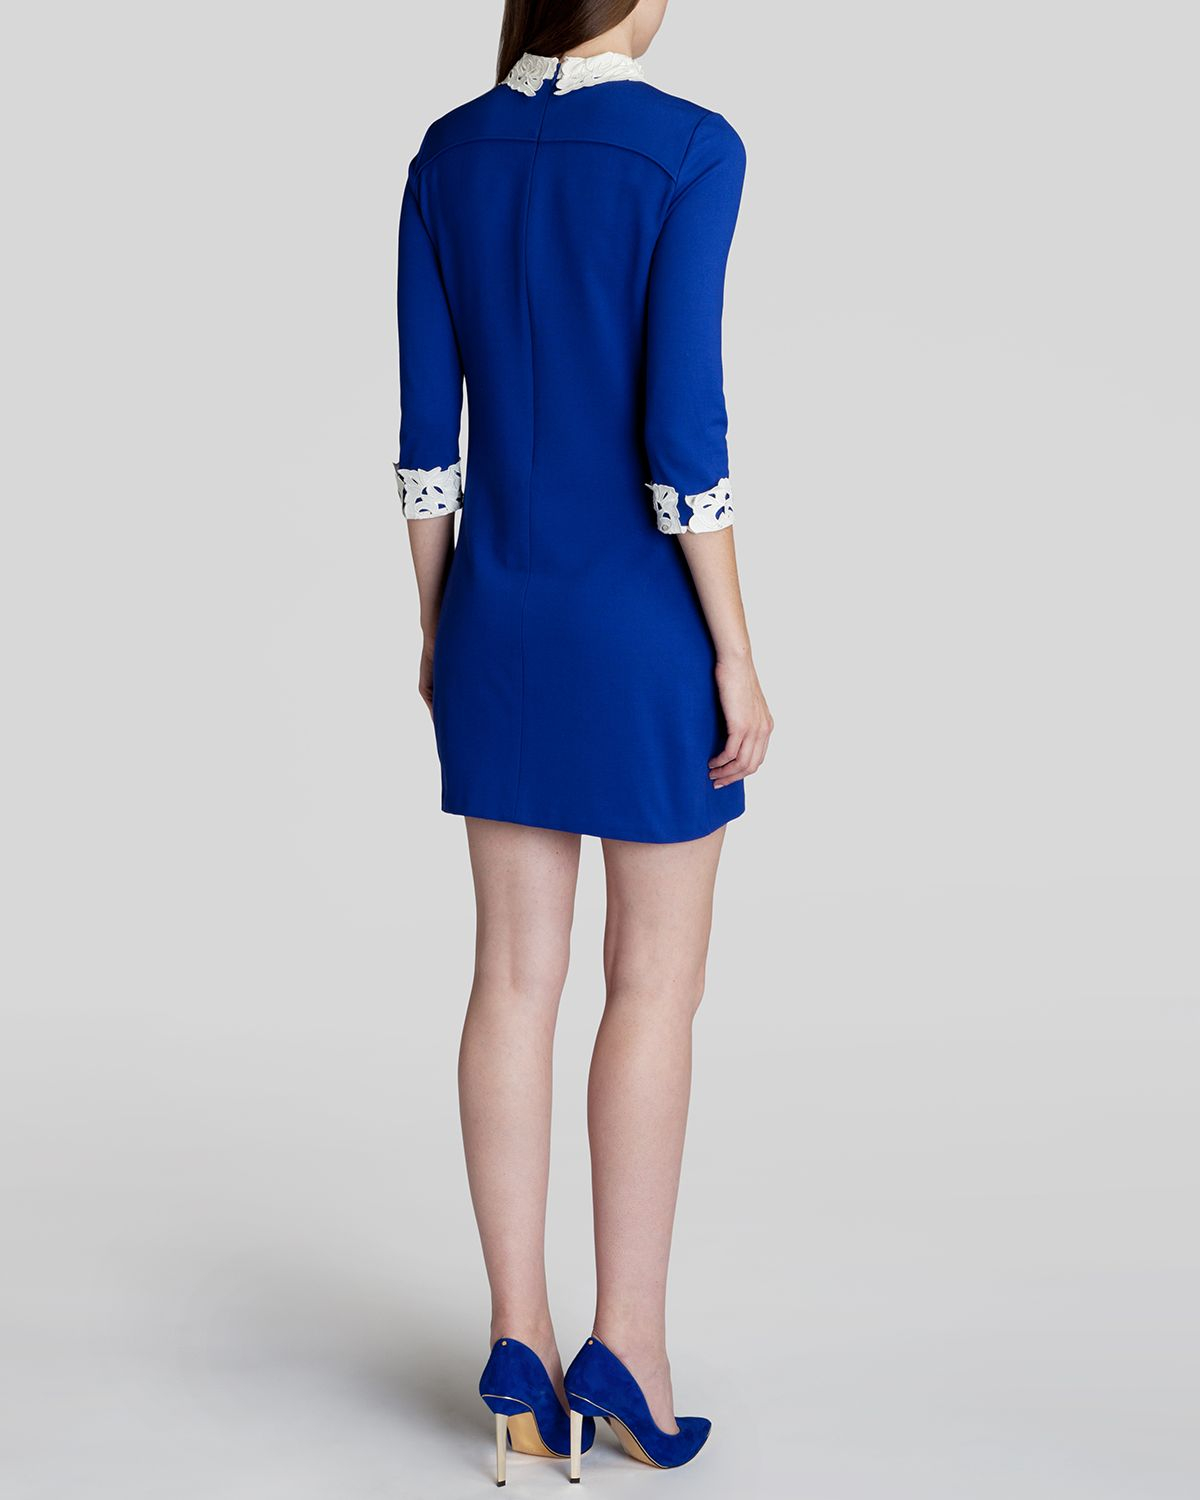 Blue dress with lace collar